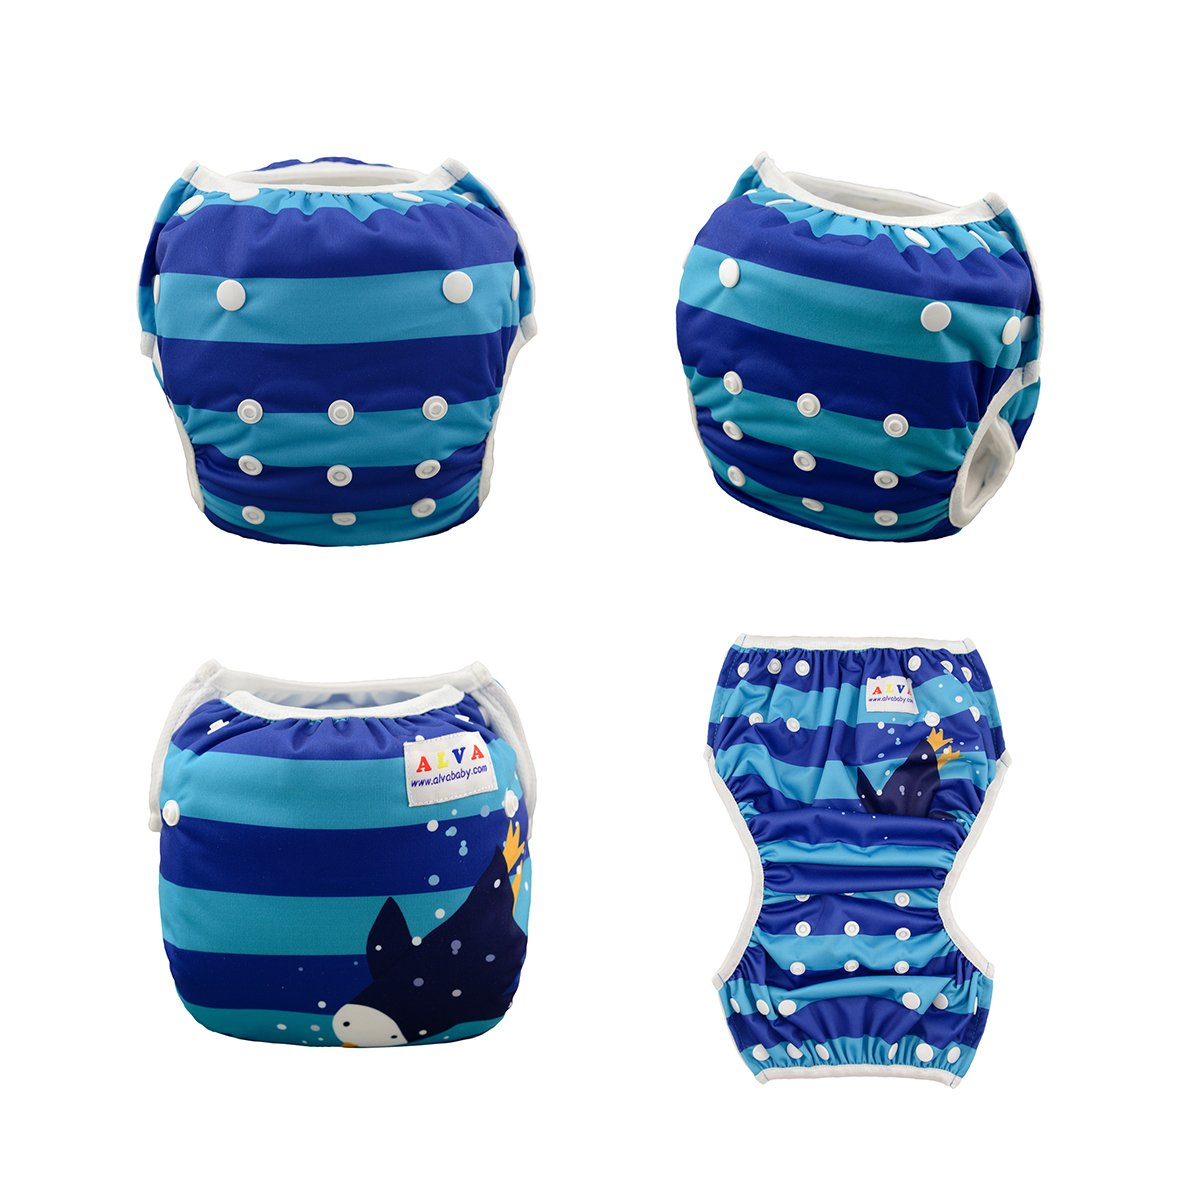 Alva Baby 2pcs Pack One Size Reuseable Washable Swim Diapers DYK11-12-CA